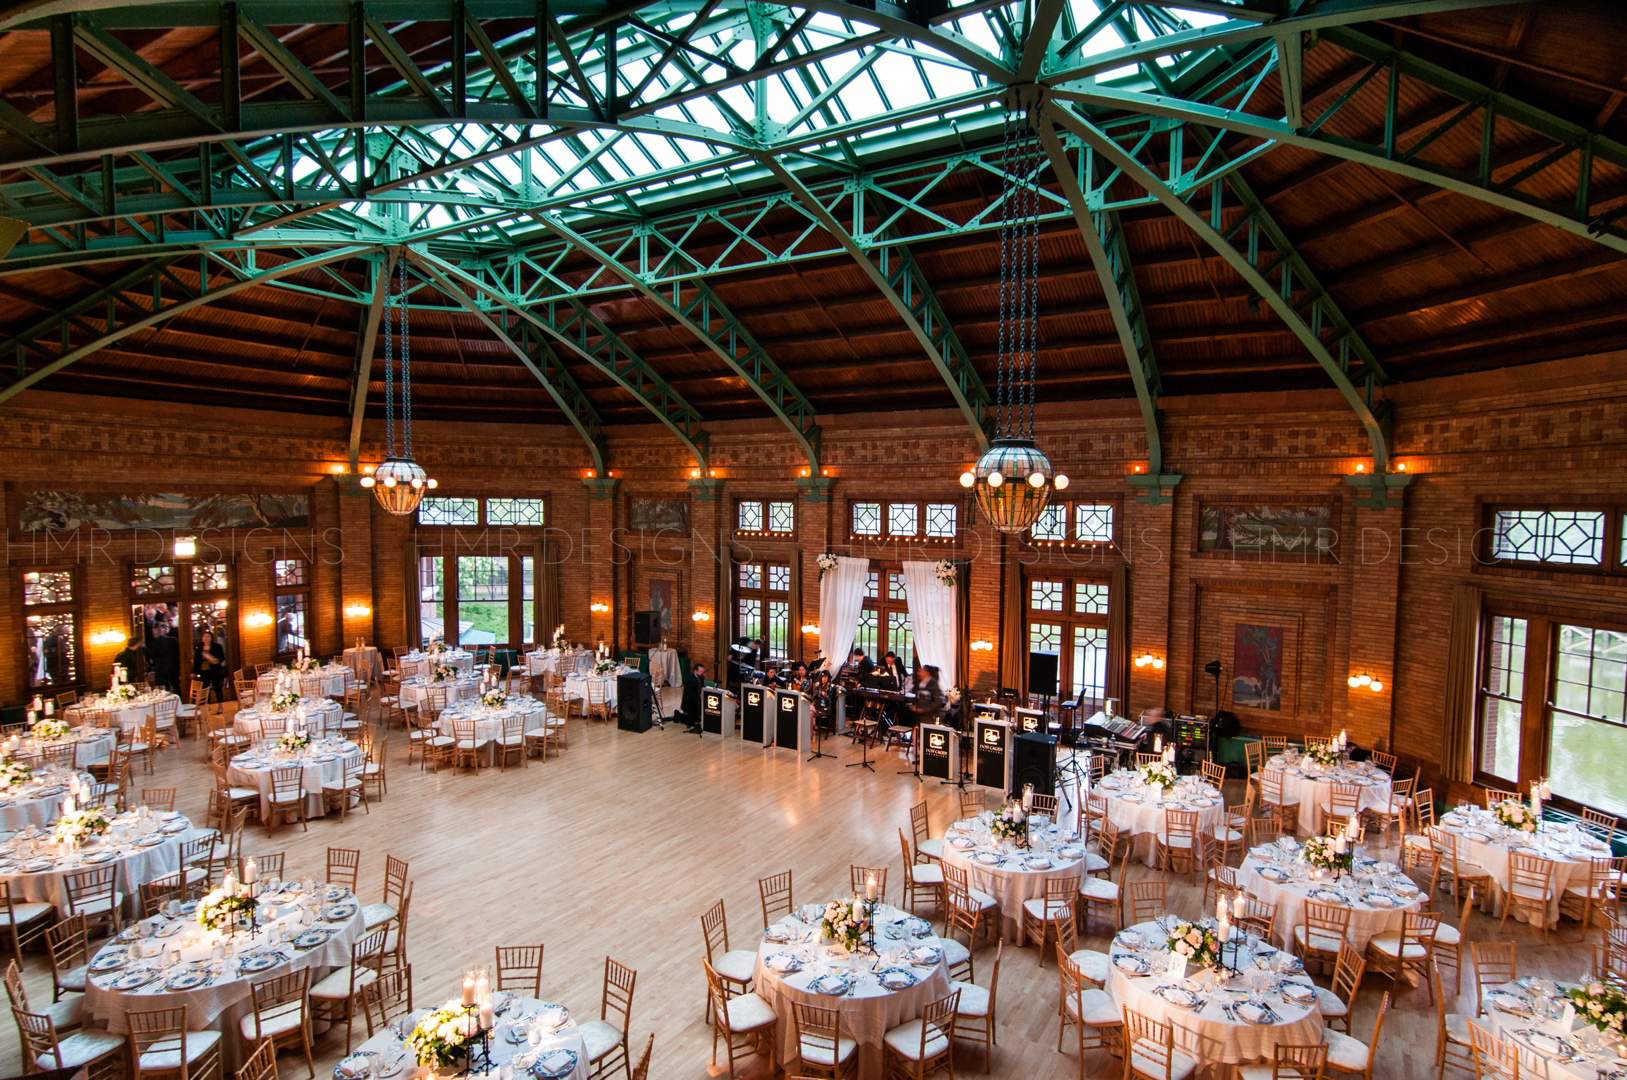 A full room shot of a spring wedding designed by HMR Designs at Cafe Brauer in Chicago.